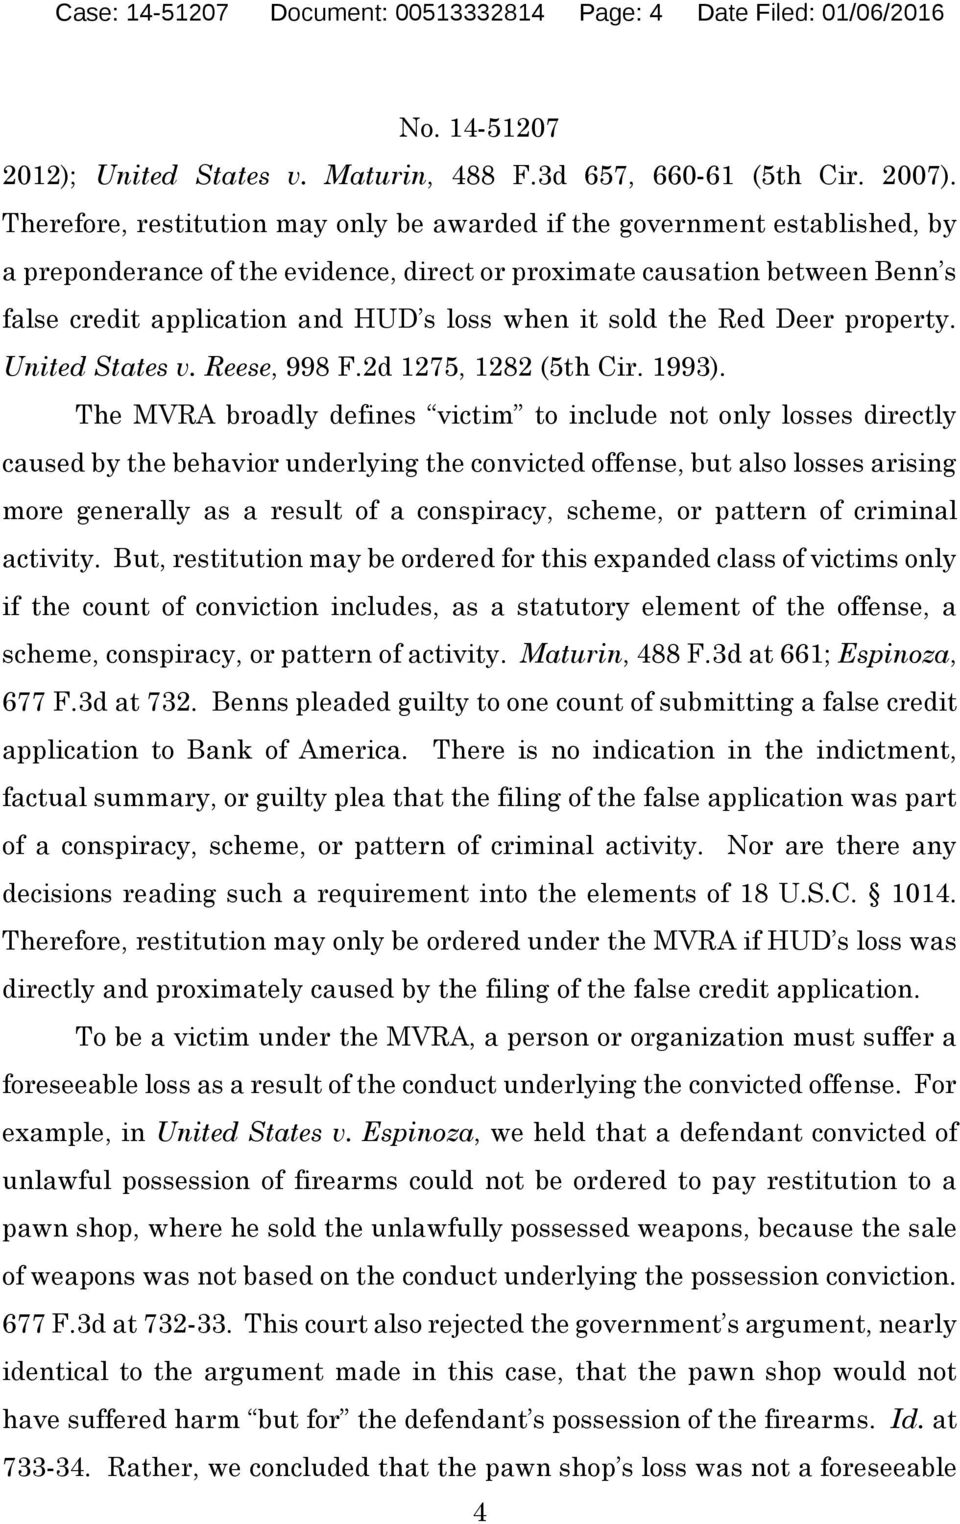 it sold the Red Deer property. United States v. Reese, 998 F.2d 1275, 1282 (5th Cir. 1993).